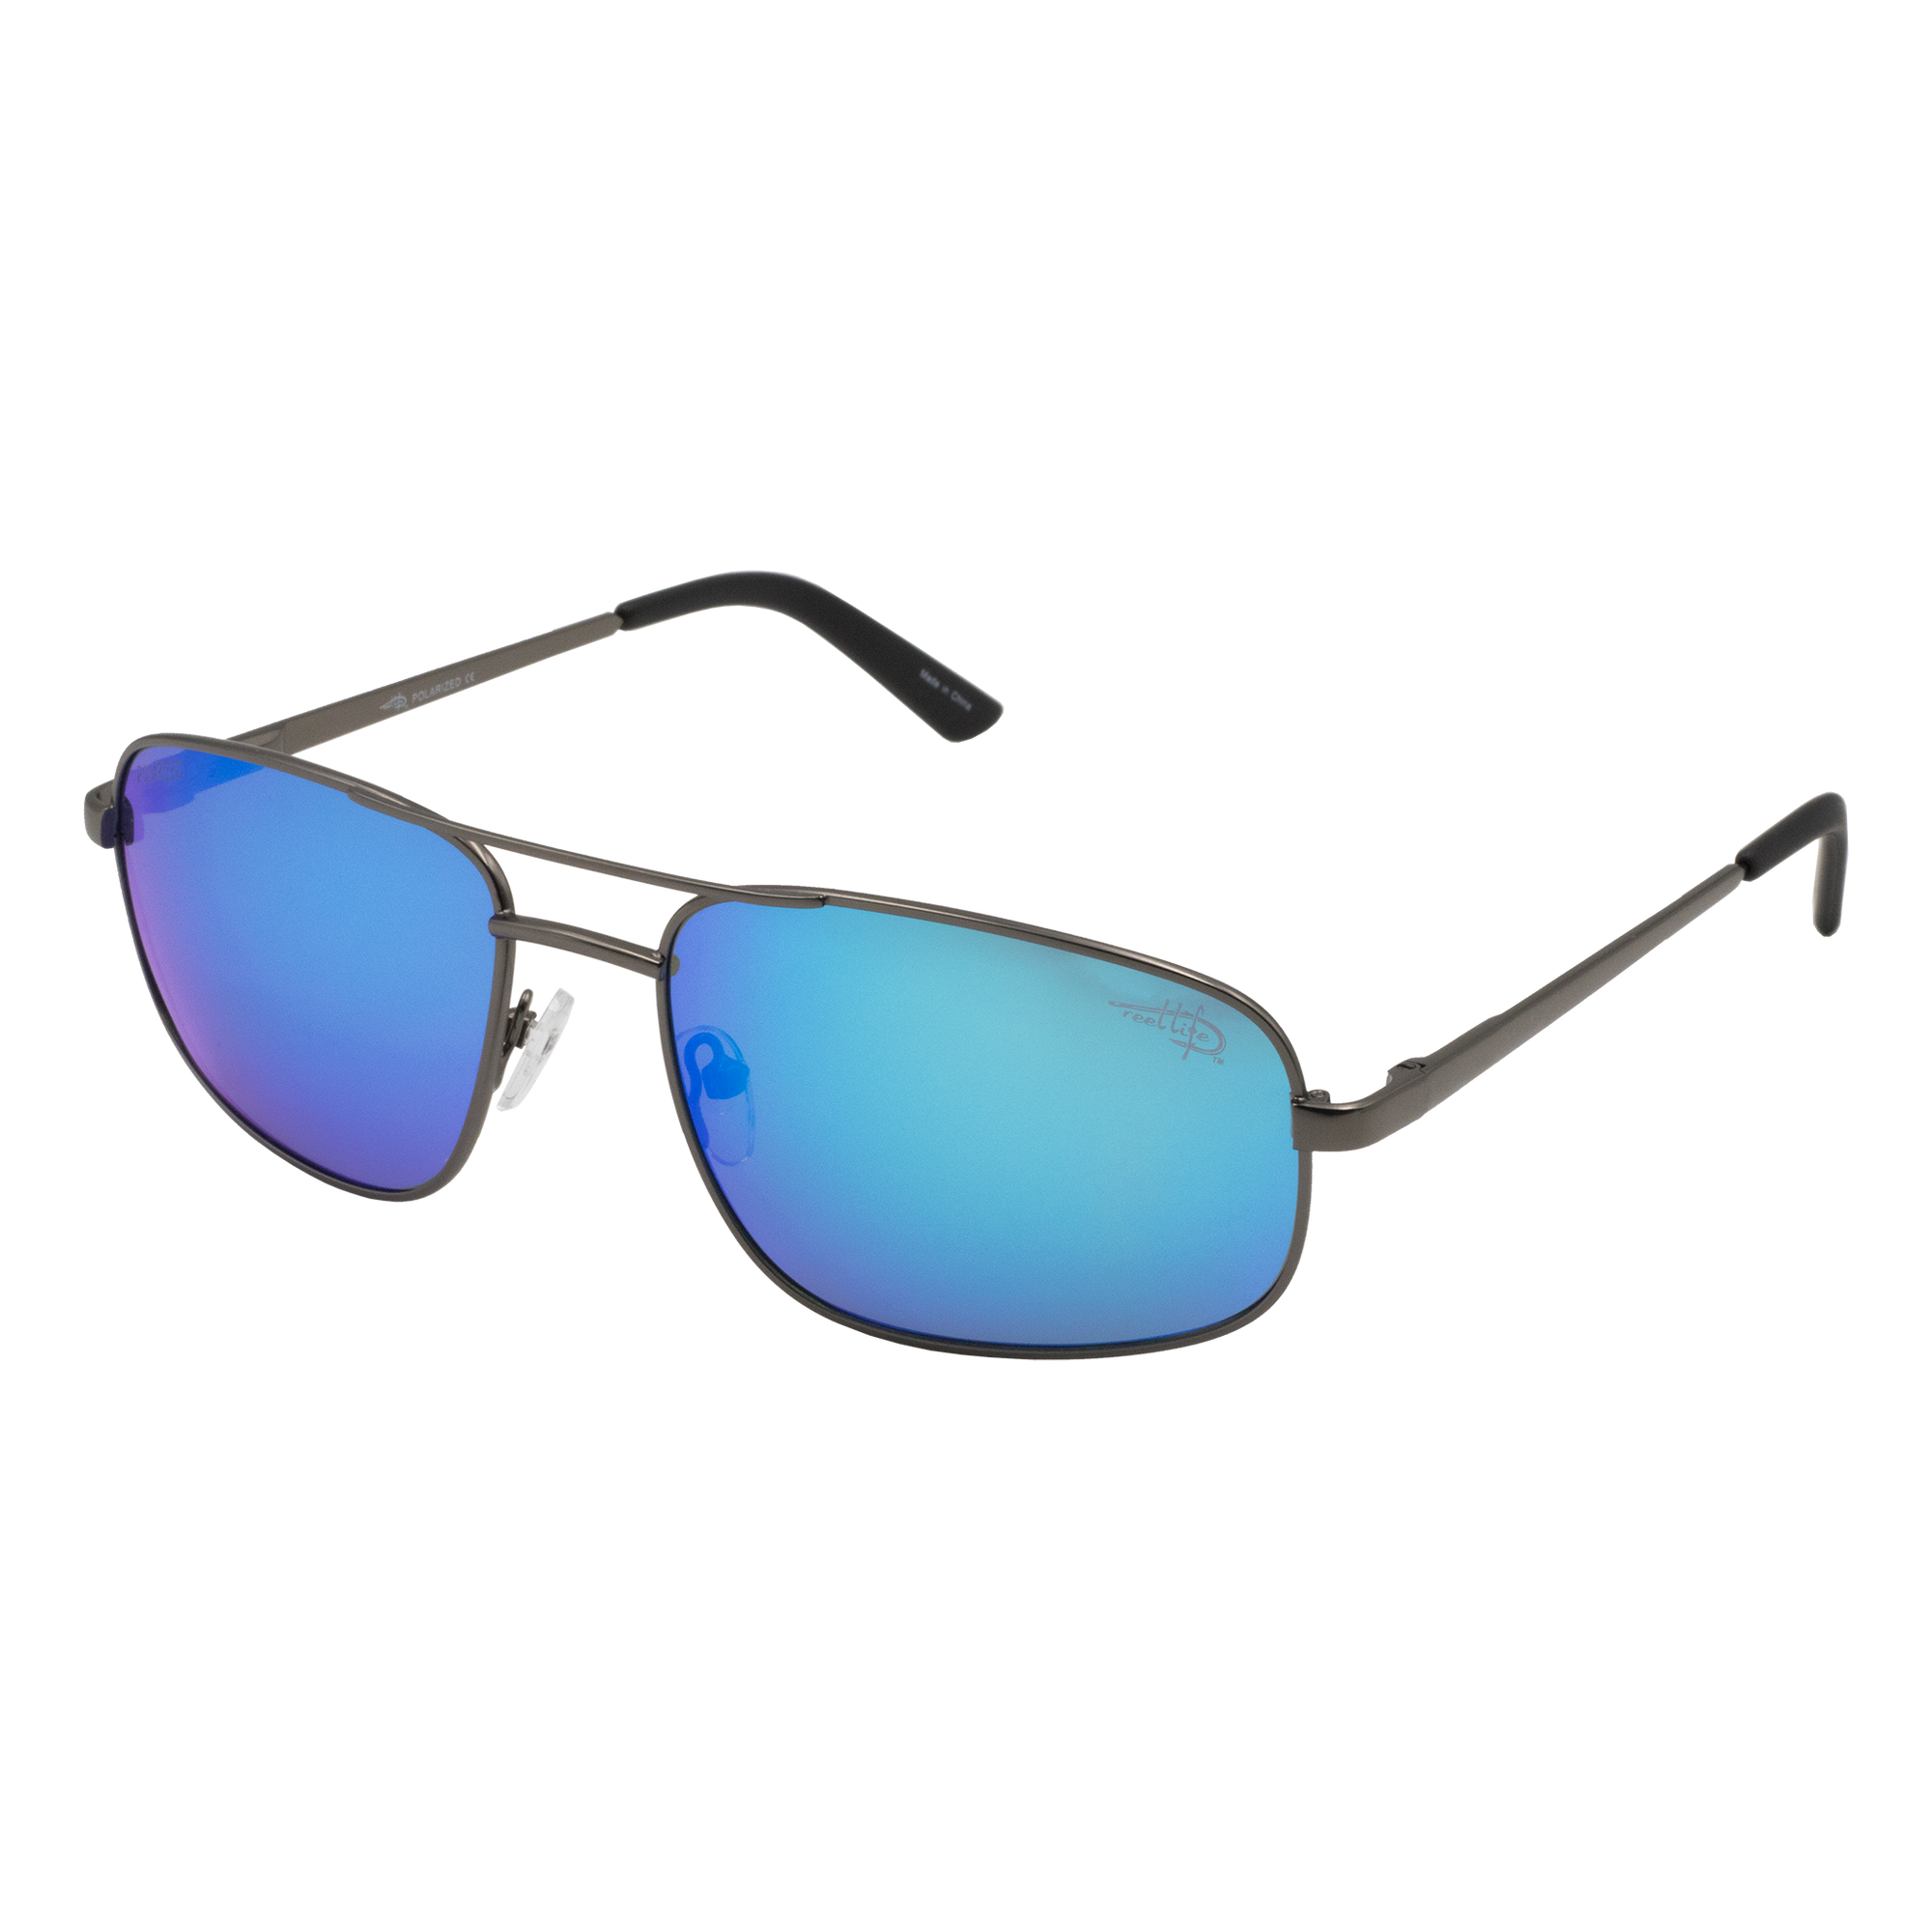 De Soto 005P -  Polarized Blue Mirror Lens Sunglasses - Reel Life